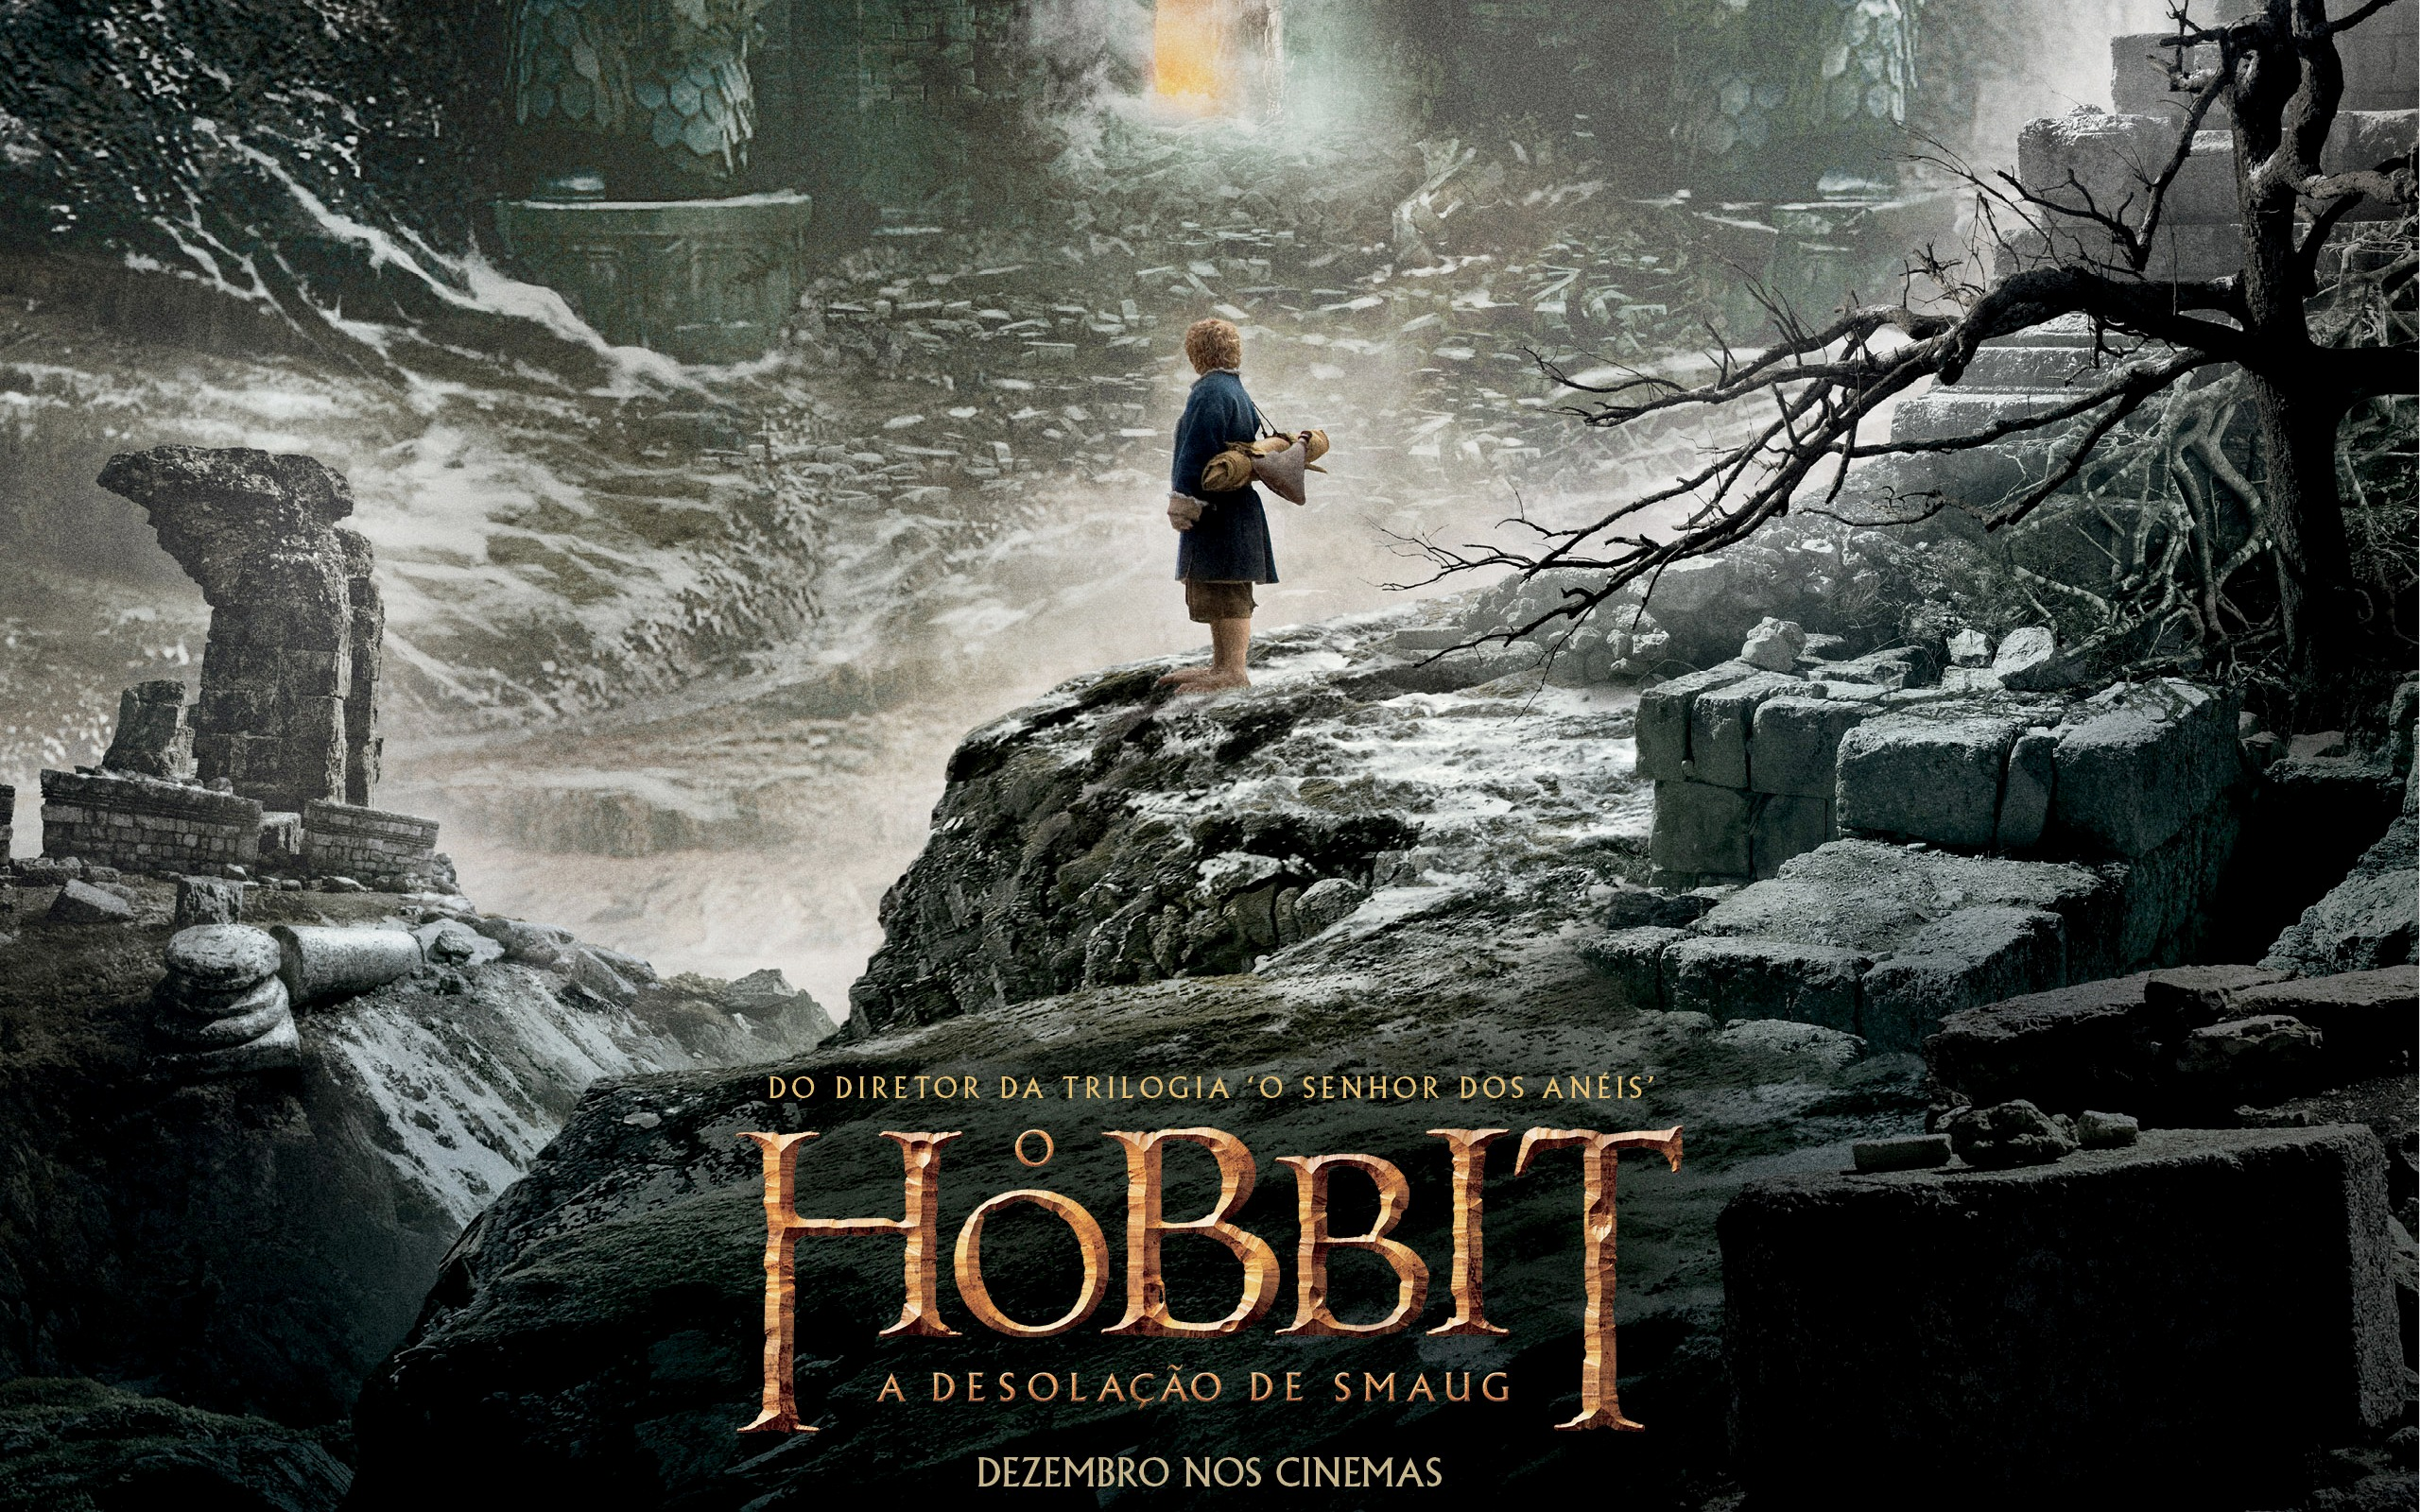 The Hobbit: The Desolation Of Smaug (2013) Wallpapers ...